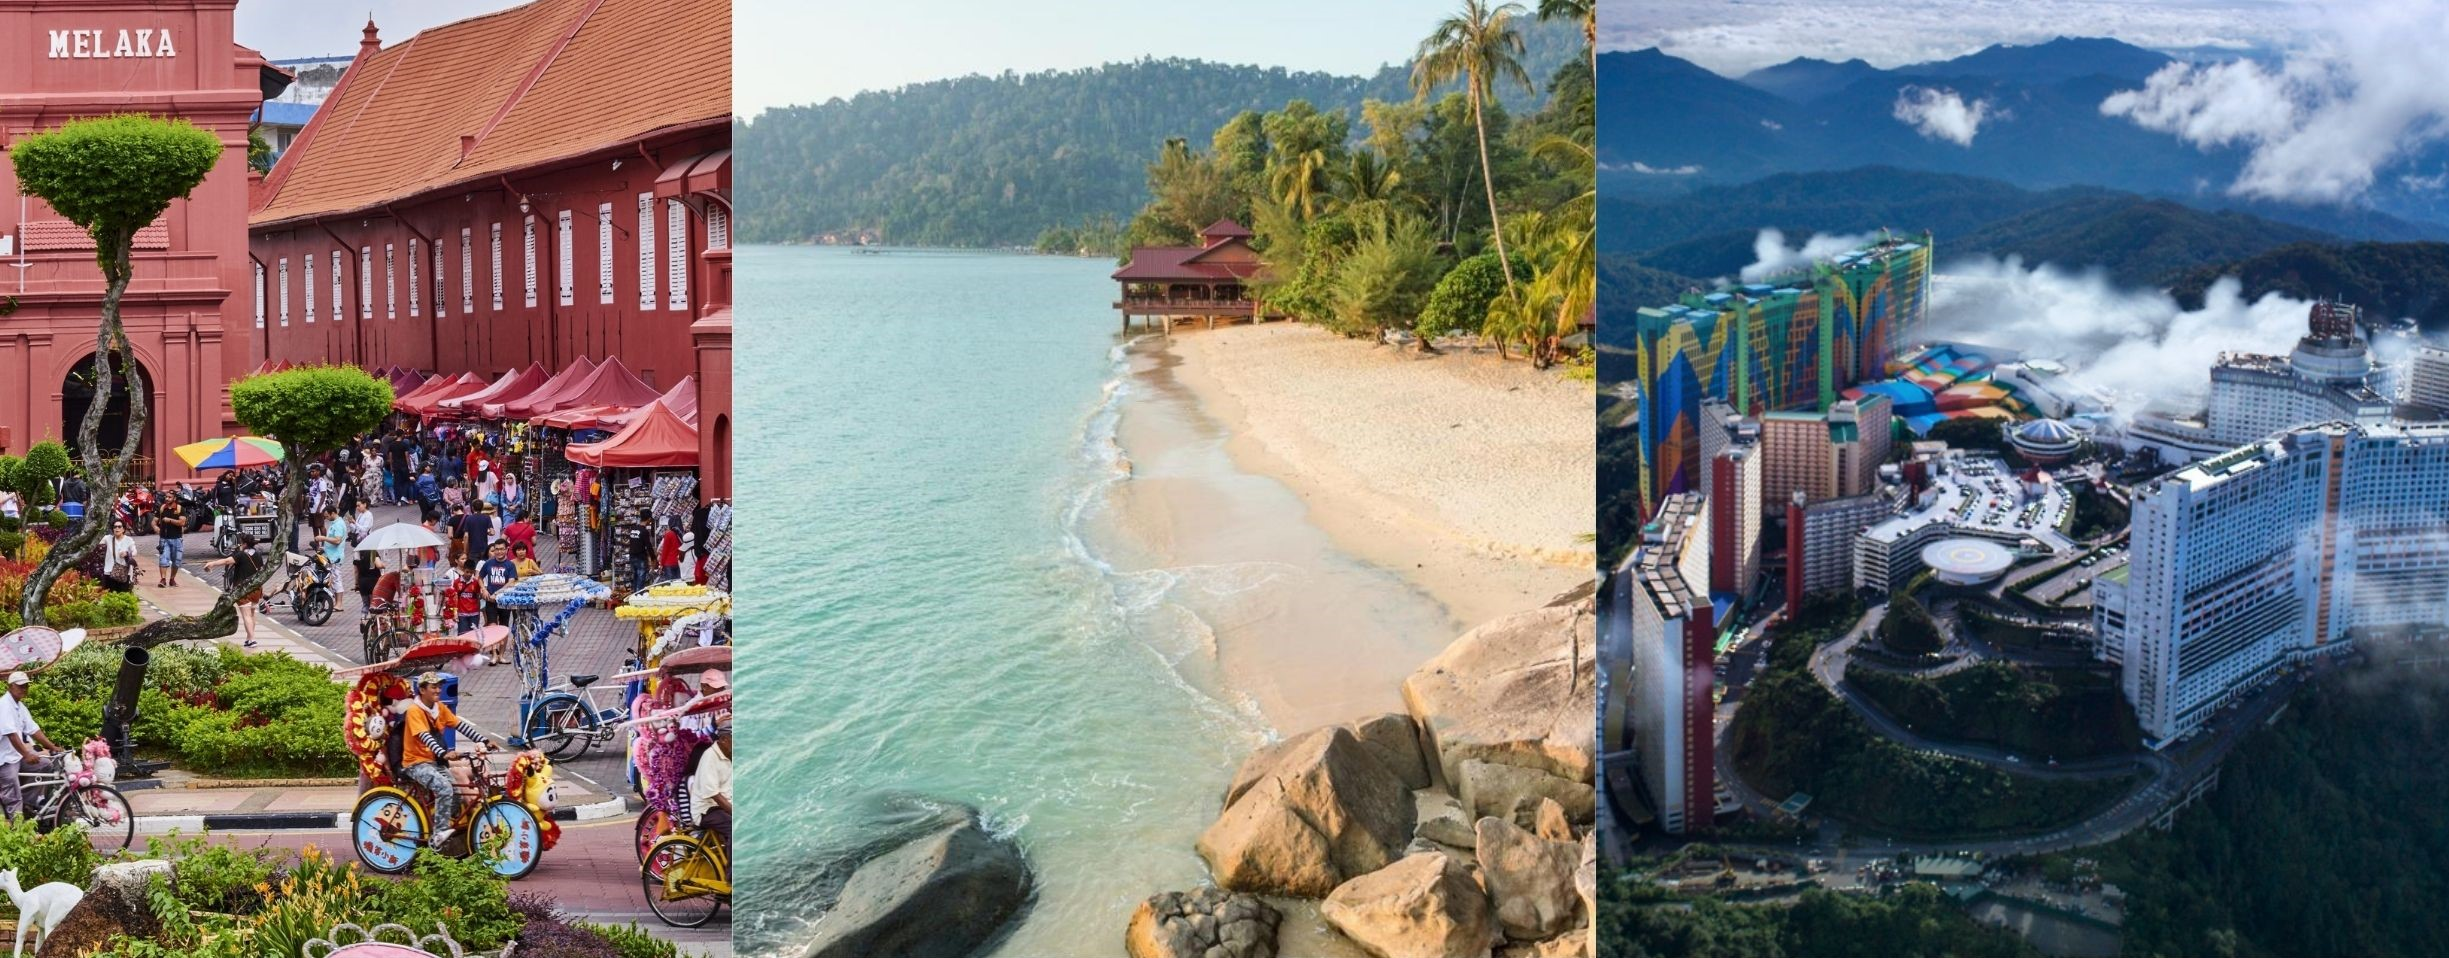 Genting, Melaka And Tioman Island To Reopen Under Travel Bubble On 1st October